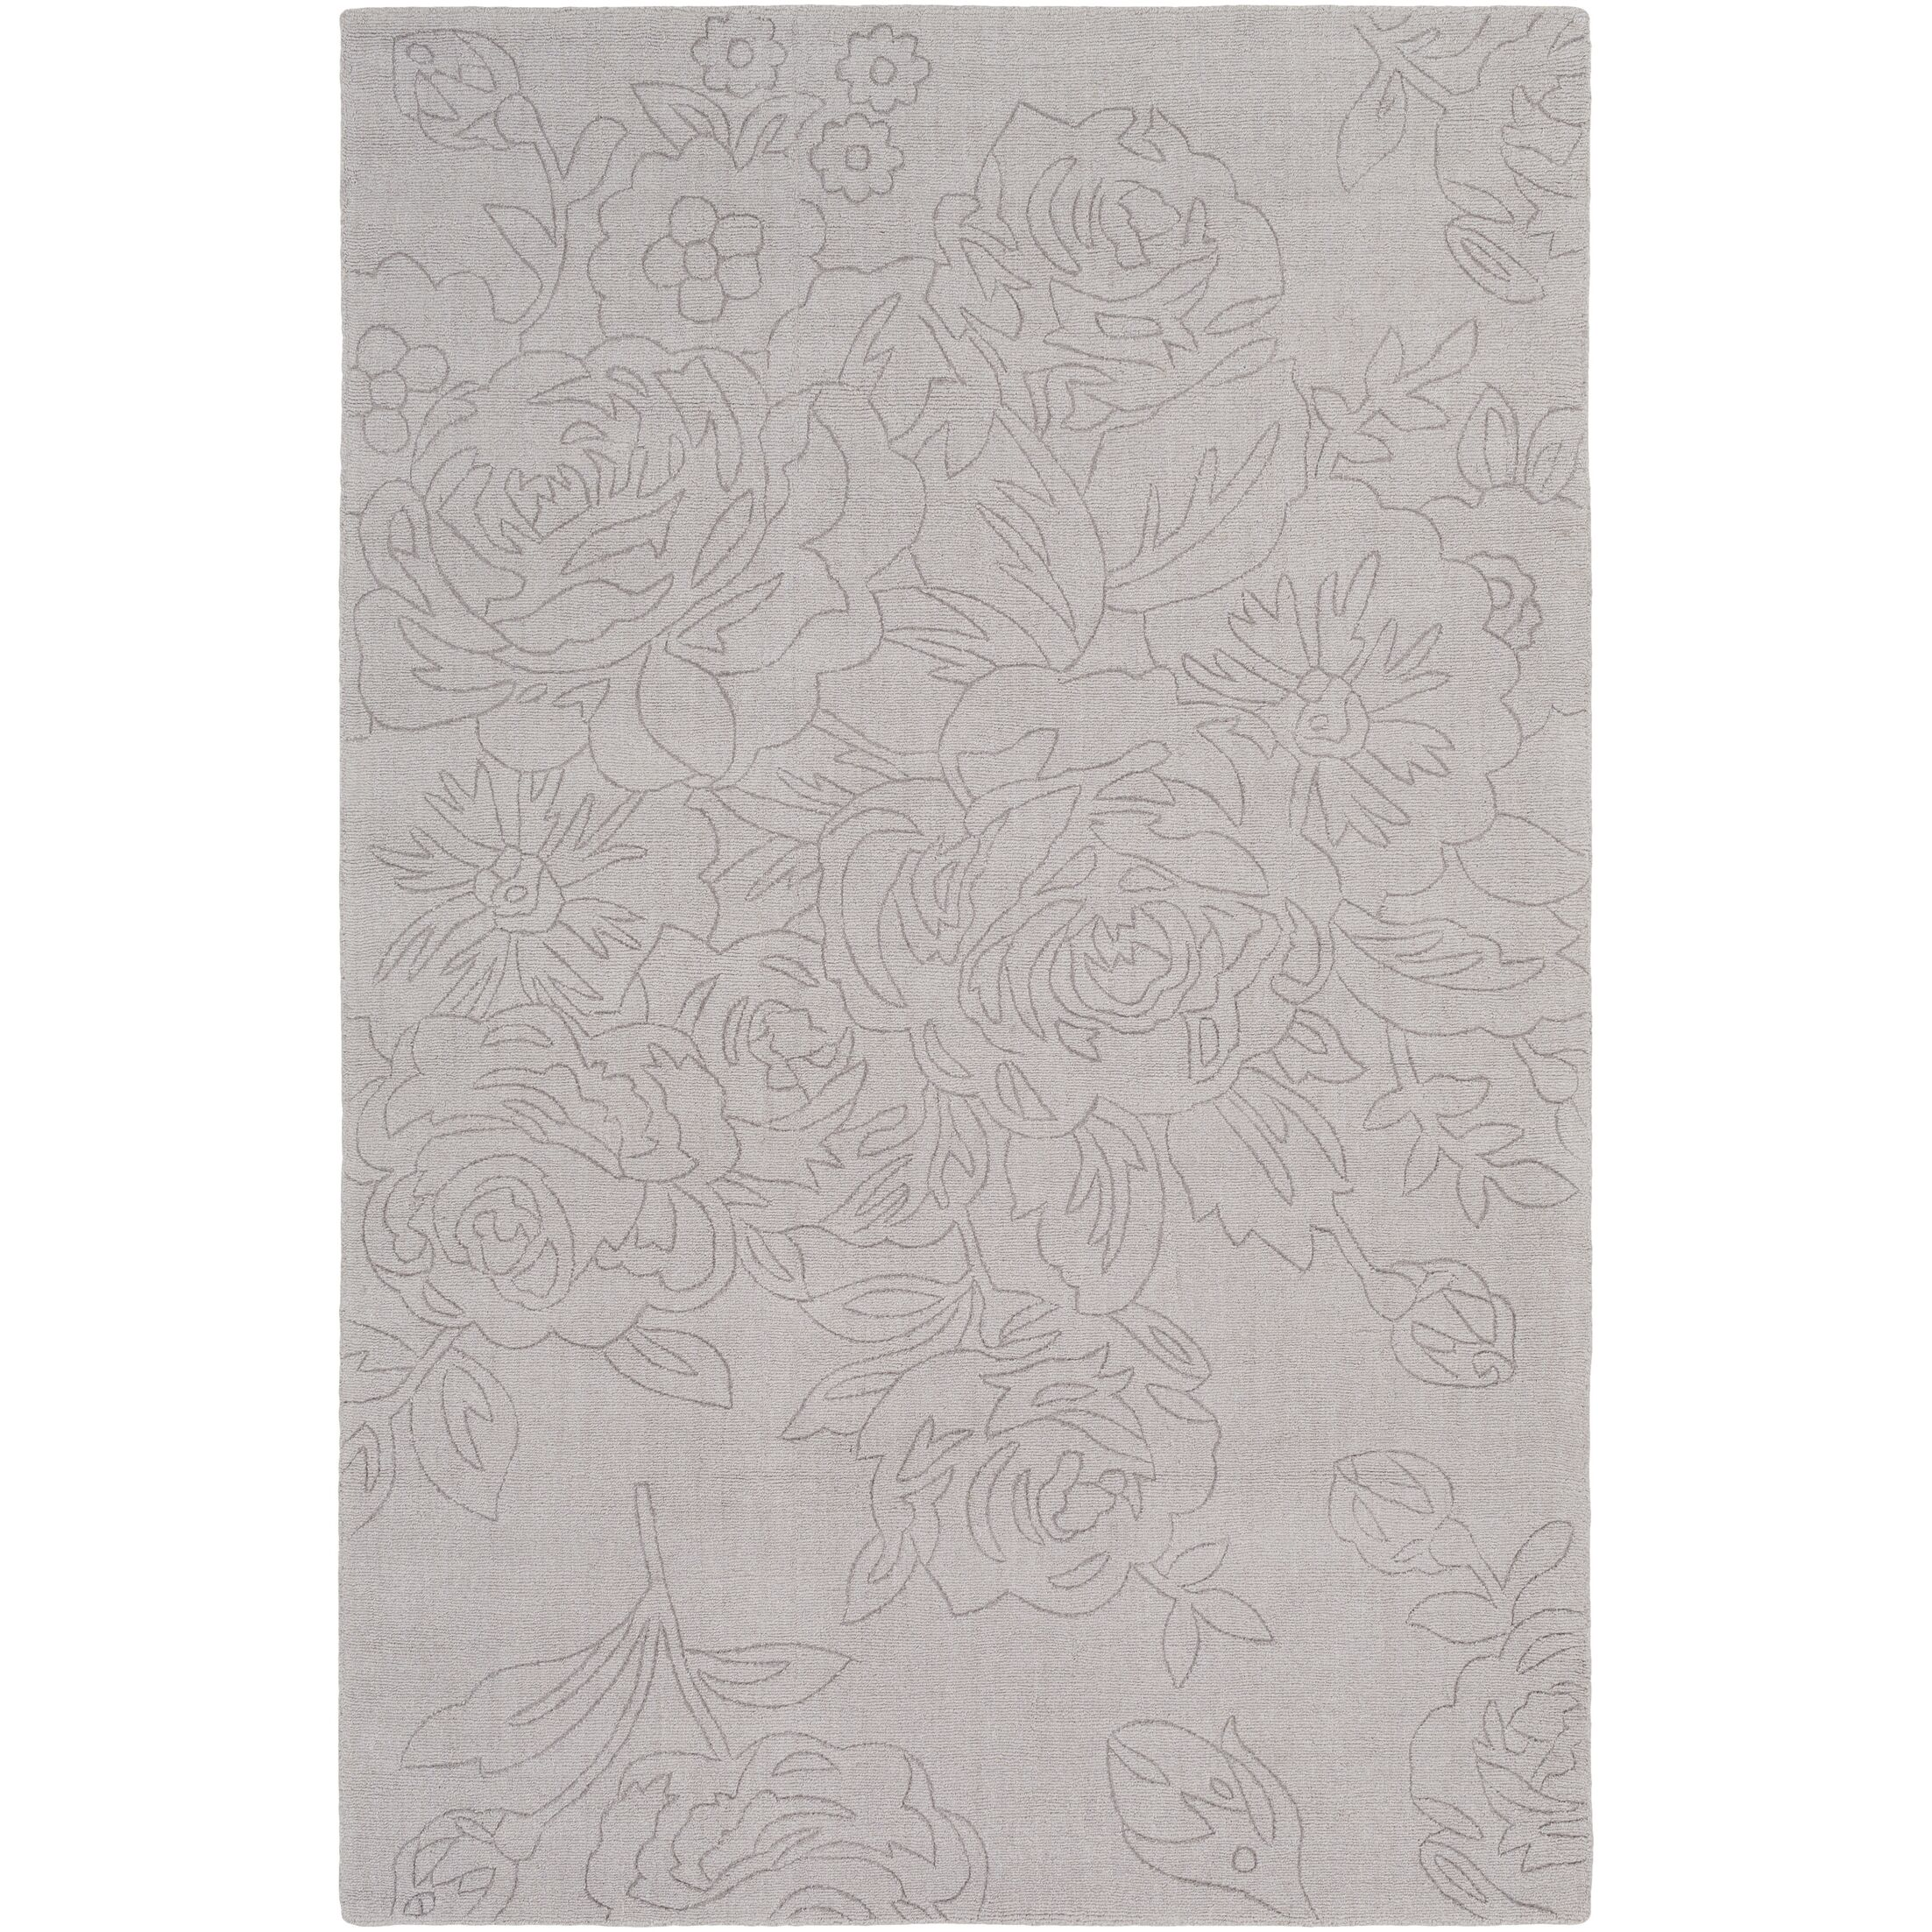 Beckenham Hand-Loomed Taupe Area Rug Rug Size: Rectangle 5' x 7'6